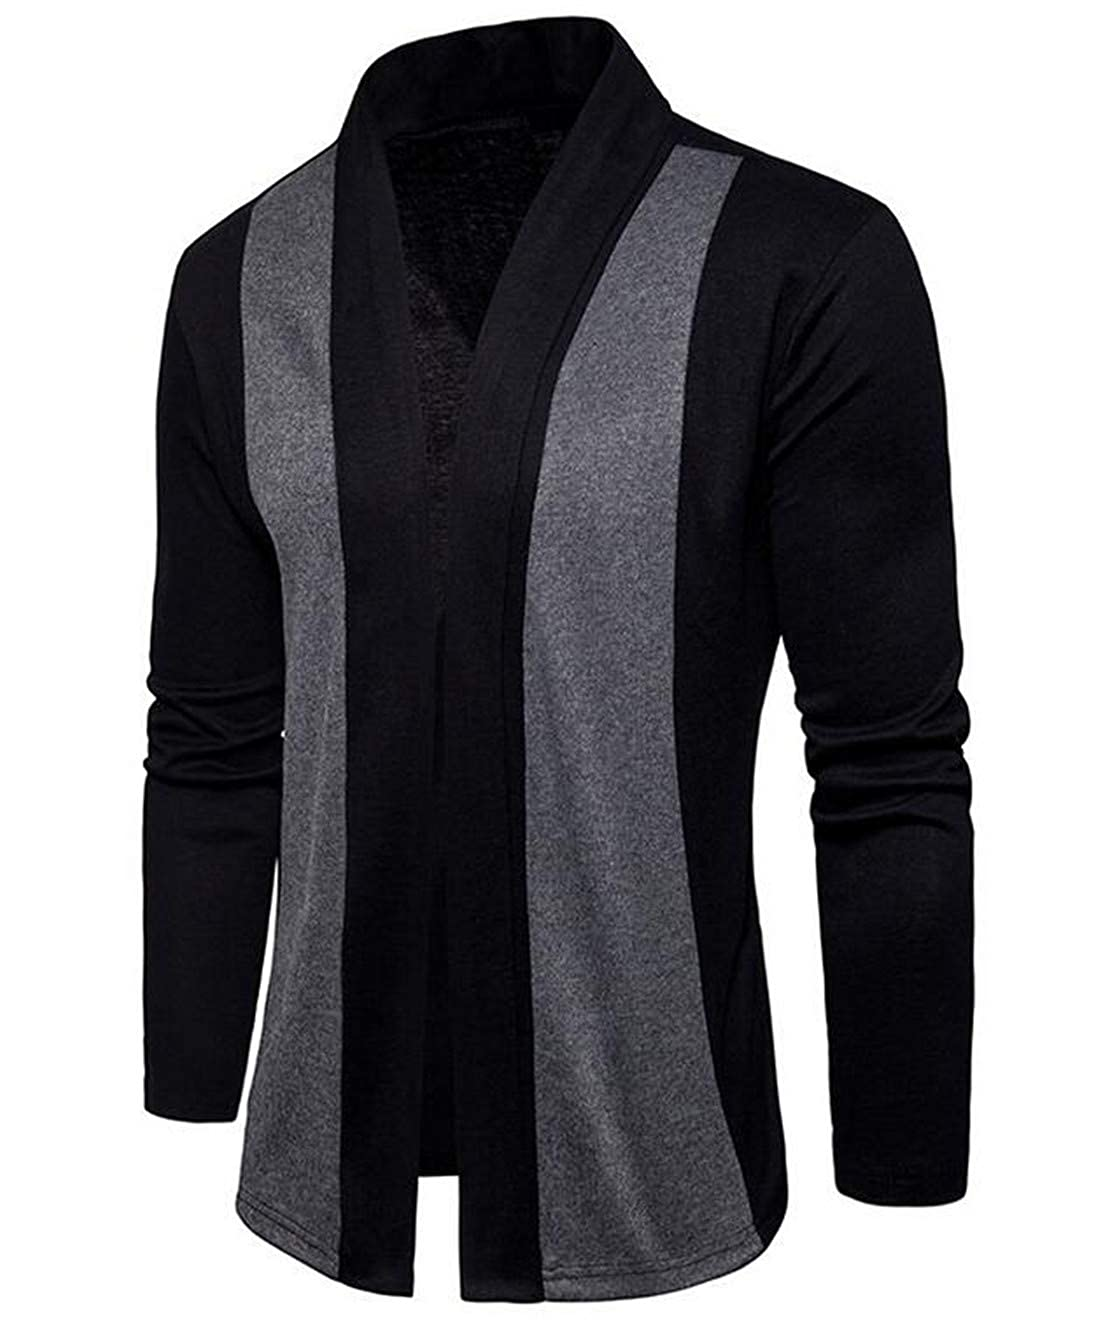 BLTR Men Slim Fit Block Color Long Sleeve Shawl Collar Open Front Knit Cardigan